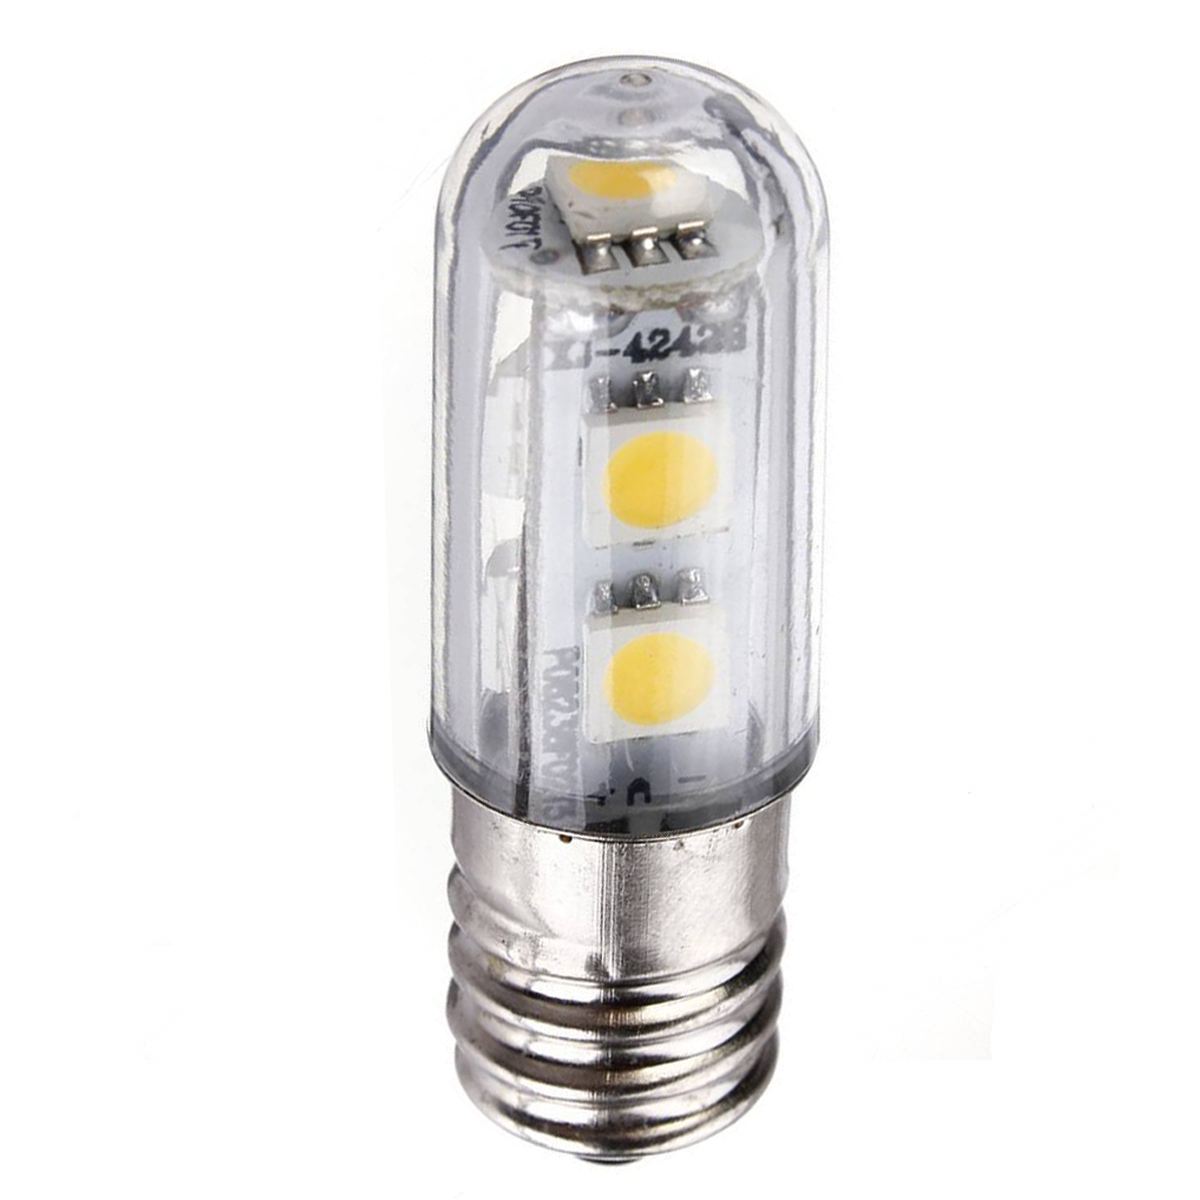 8 Pack E14 1W Led Refrigerator Bulbs 7 Smd 5050 Warm White Colour 15w Replacement for Halogen bulb 3000K 45LM Energy Saving 220V